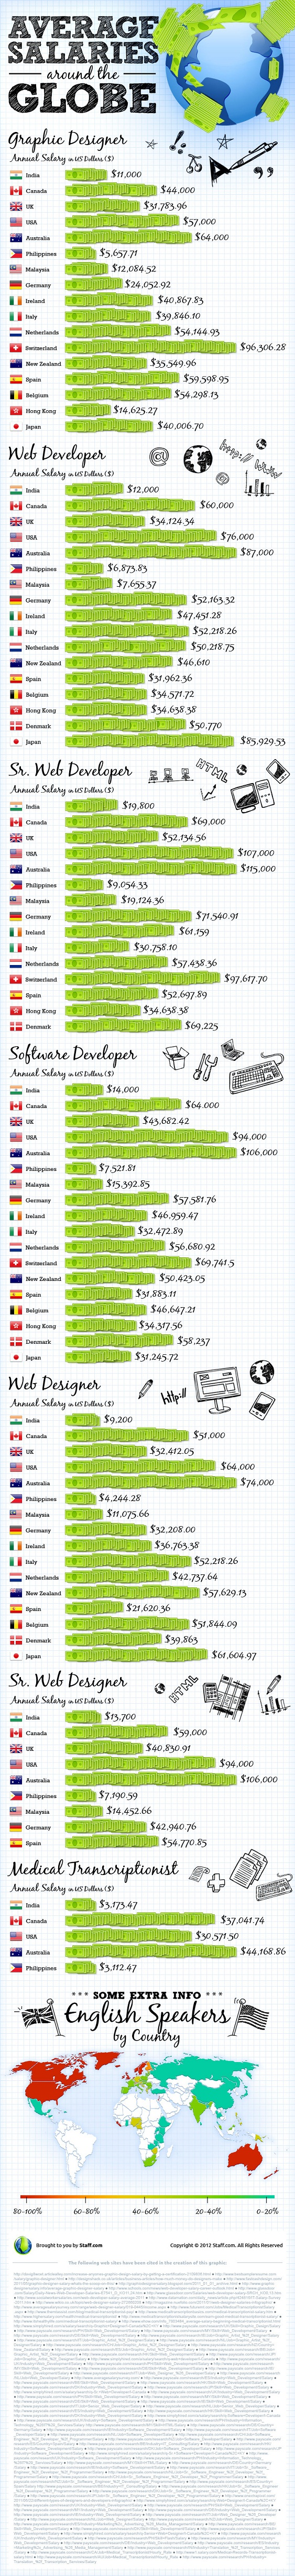 Salaries of web developers in India, the Philippines, USA and around the world